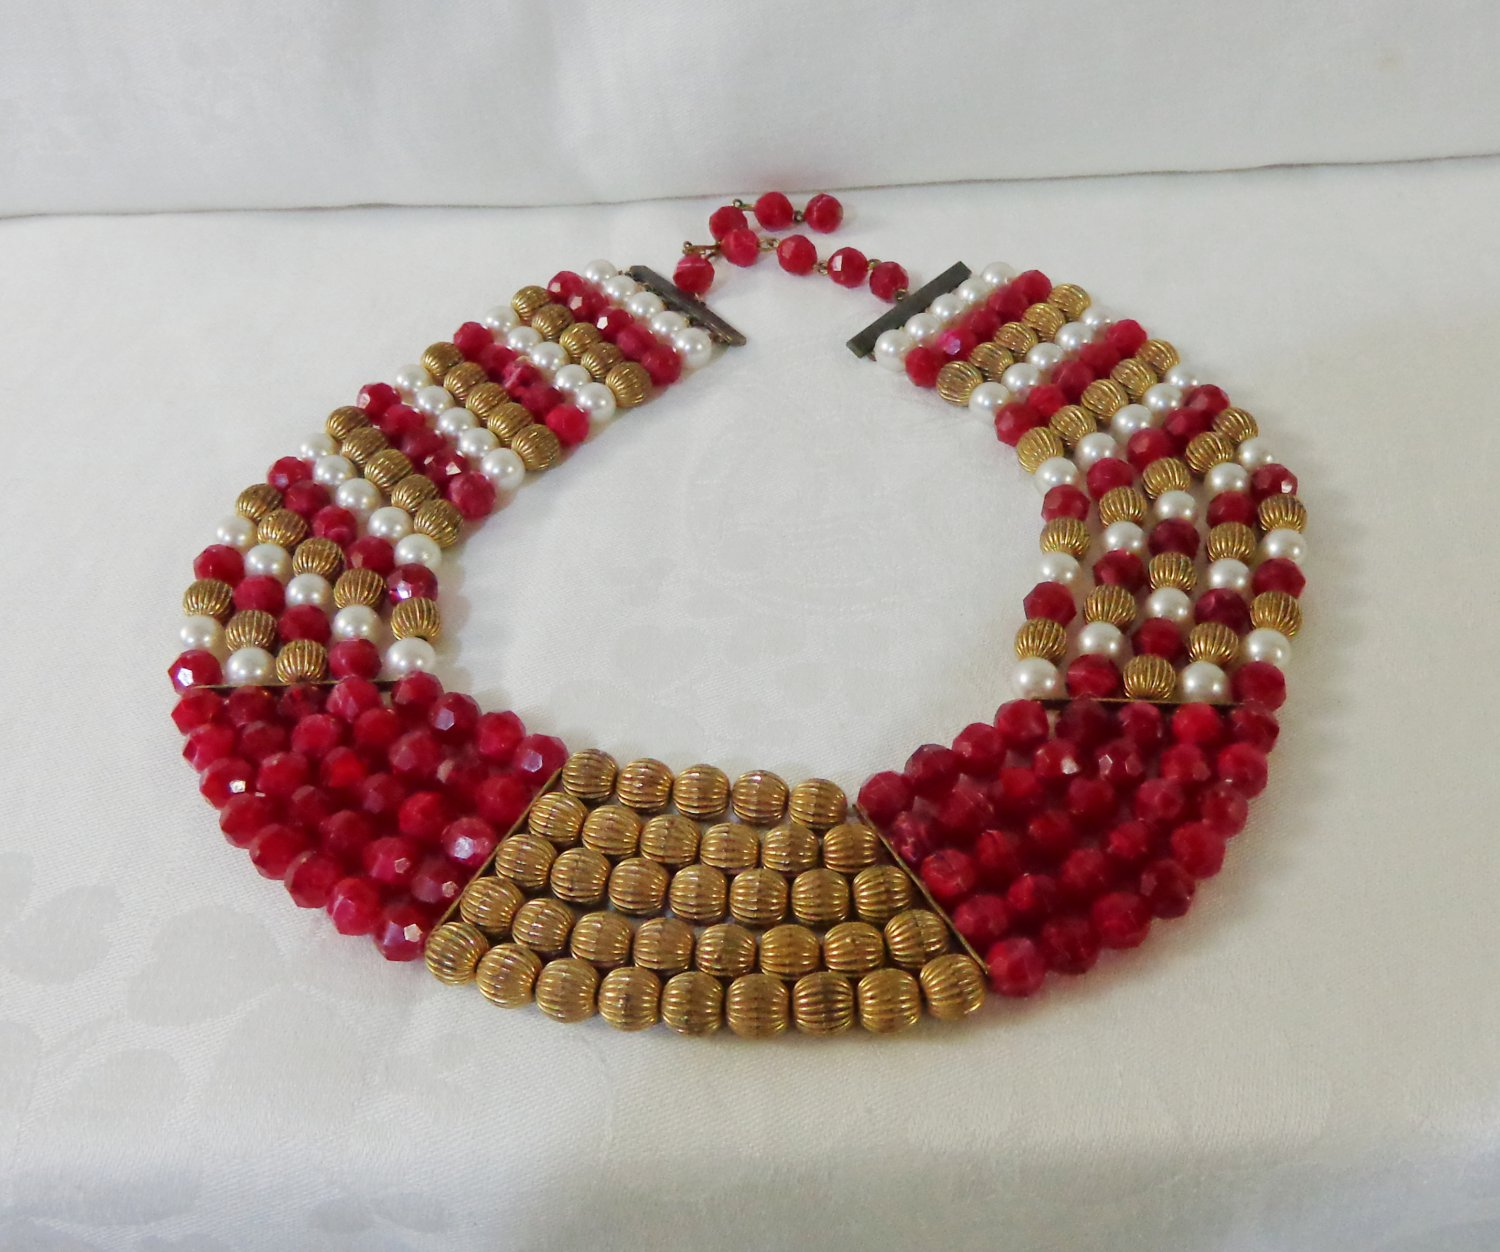 5 Strand gold and red bead necklace filler extender chain vintage ll3355